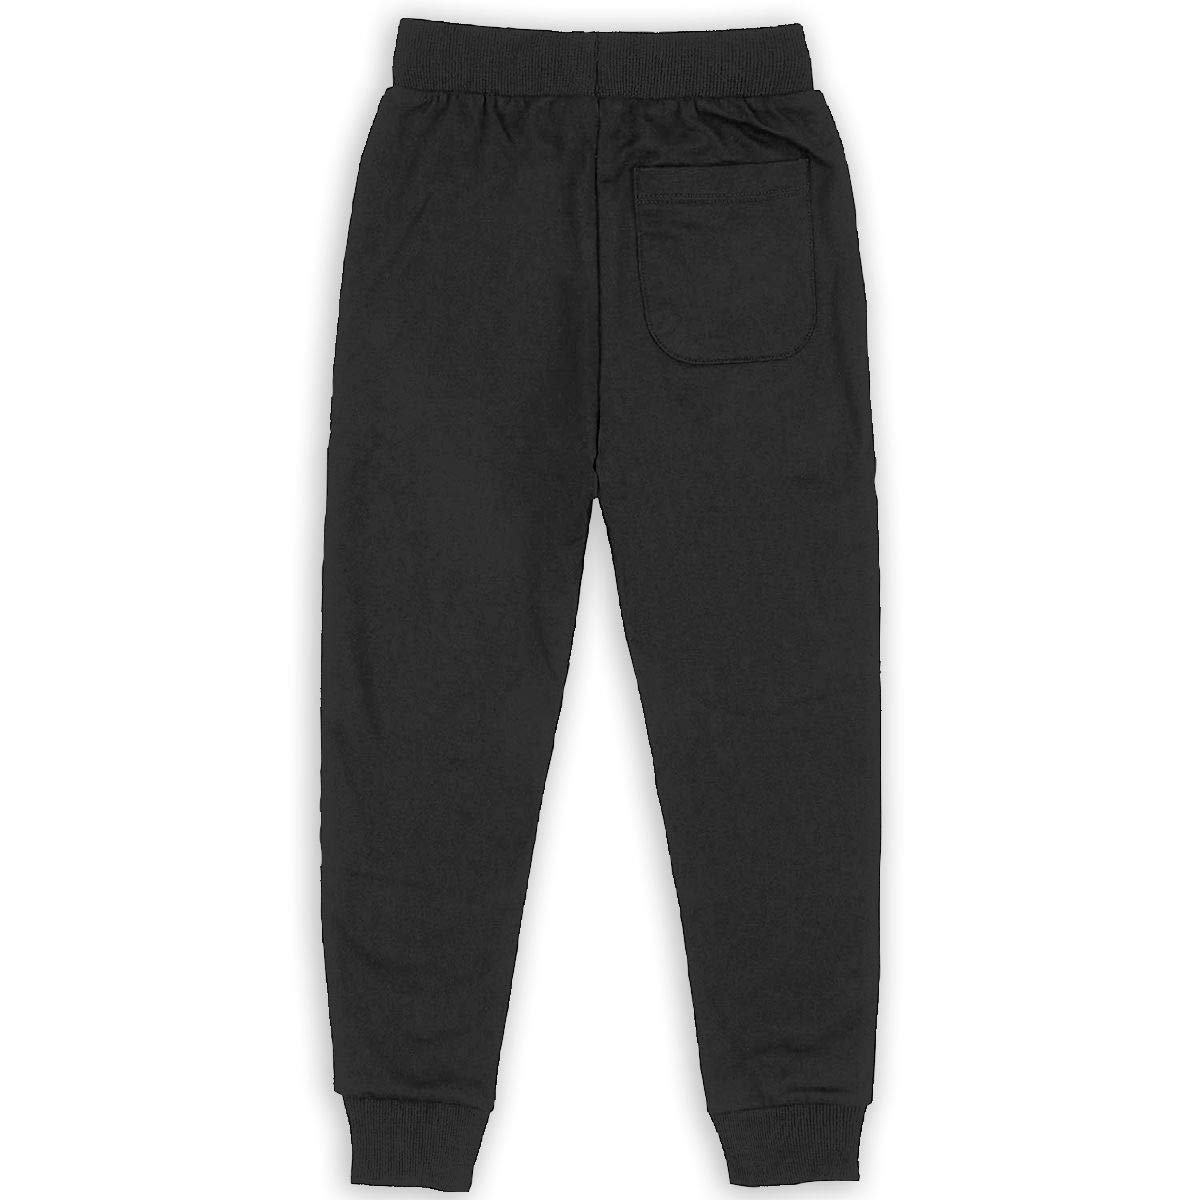 Rainbow Peace Sign Pride Boys Sweatpants,Joggers Sport Training Pants Trousers Black